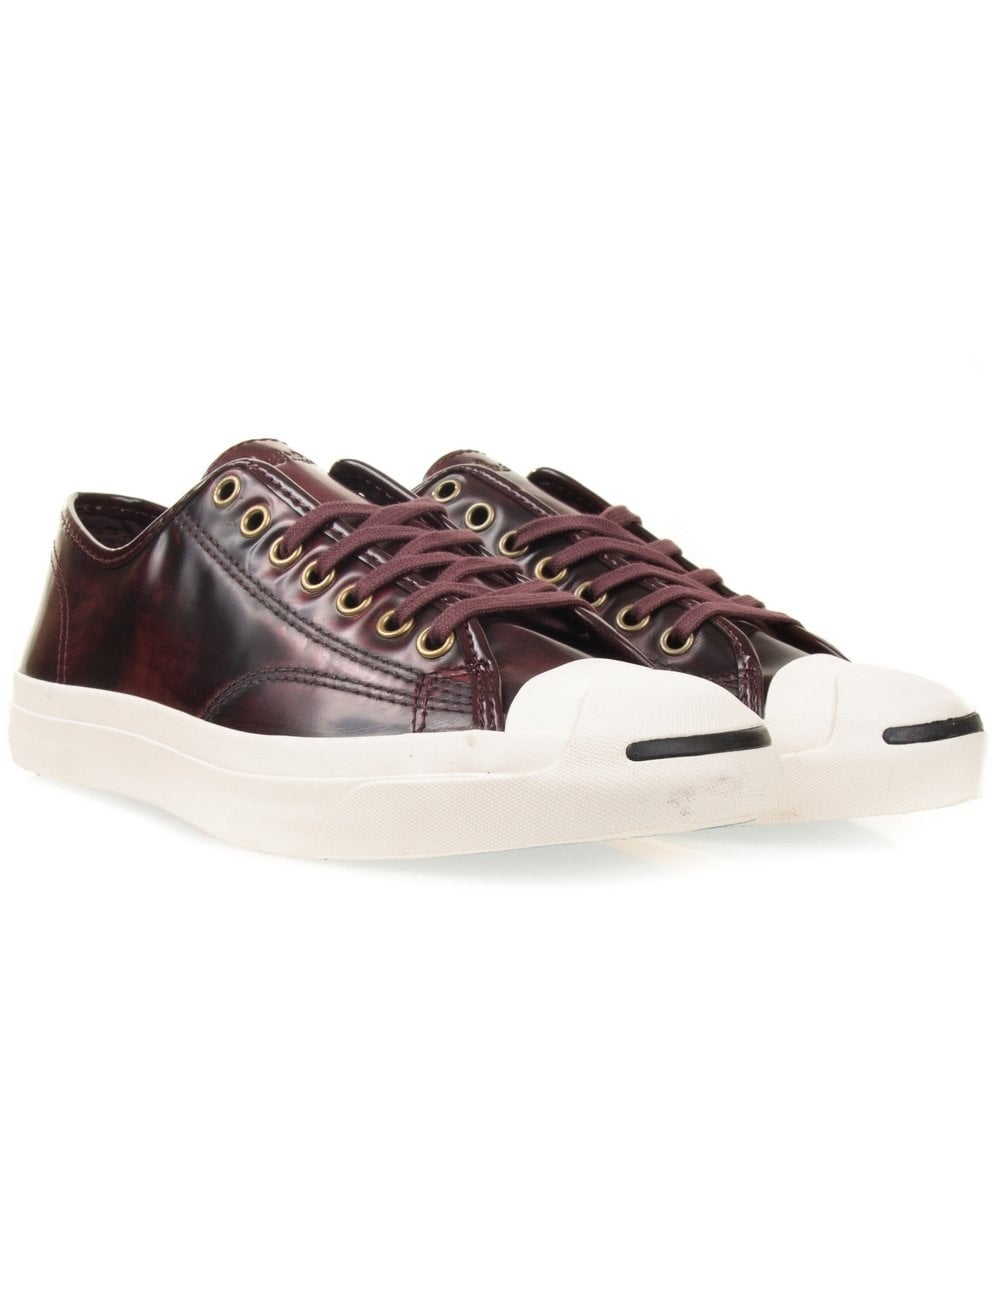 d4e283db573 Converse Jack Purcell LTT OX Shoes - Oxheart - Footwear from Fat ...